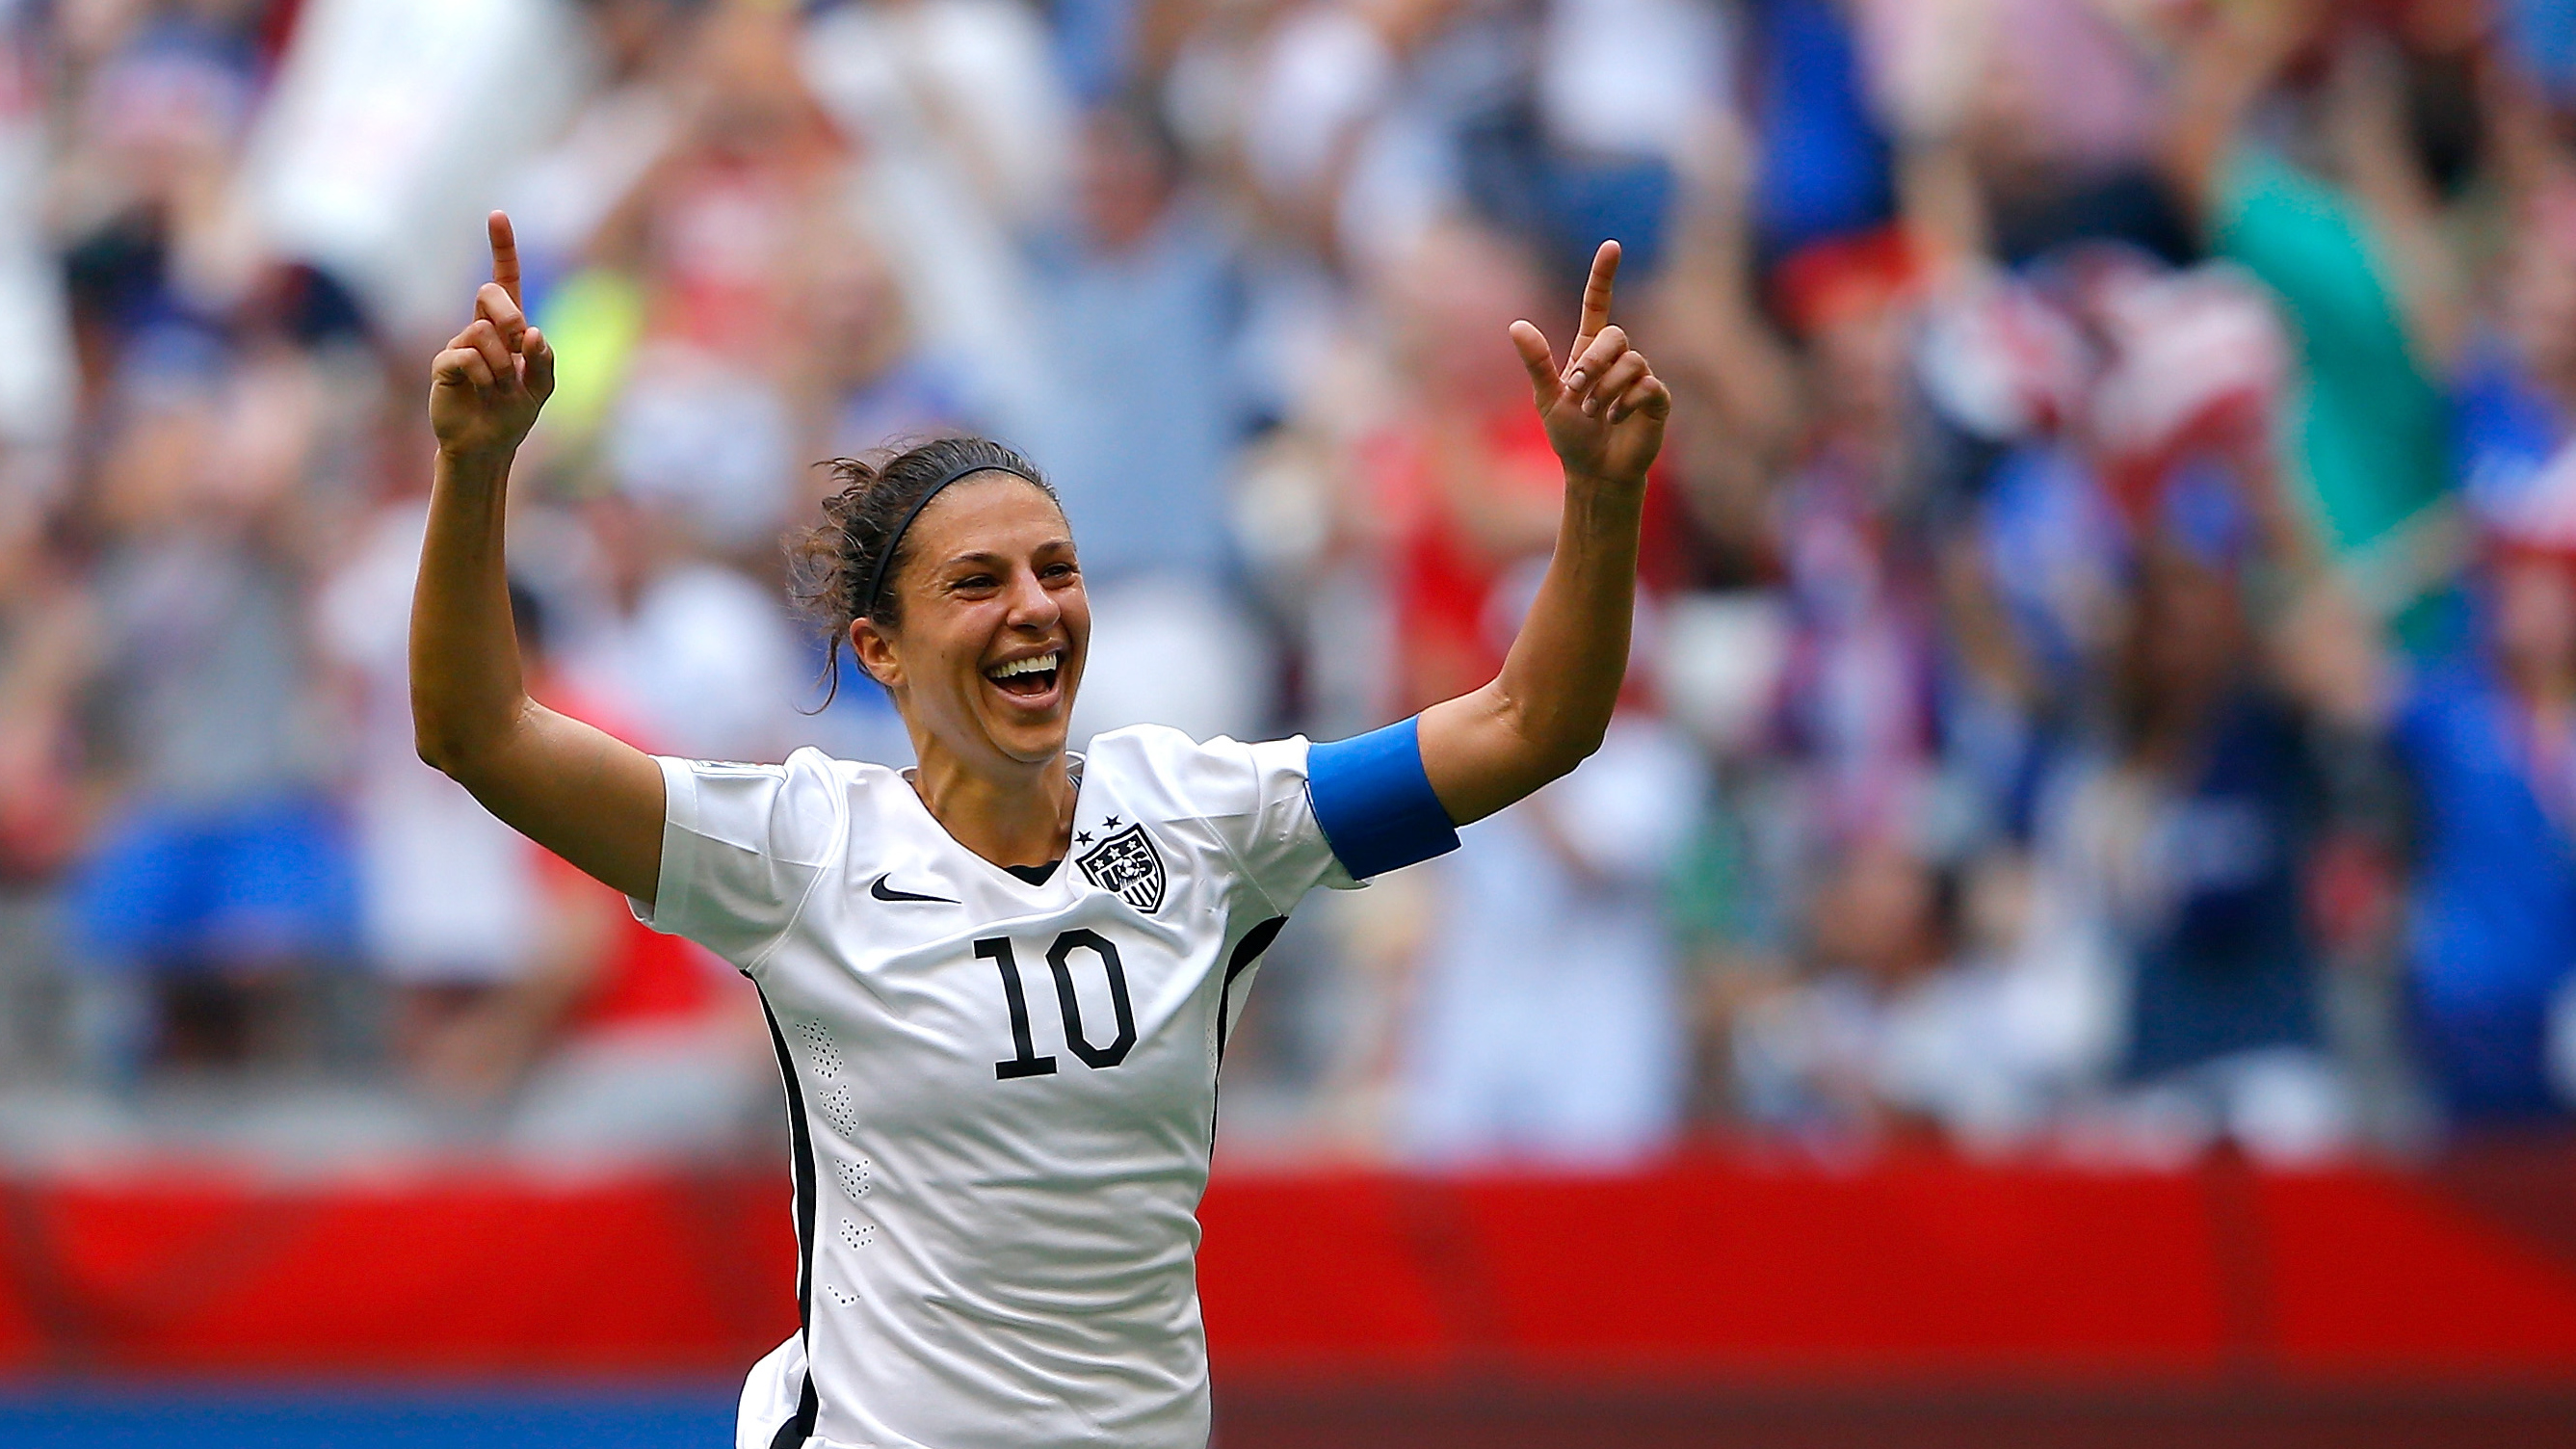 To the delight of American fans, Carli Lloyd of the United States scored a hat trick in the first 15 minutes of the FIFA Women's World Cup Final against Japan on Sunday. Kevin C. Cox/Getty Images